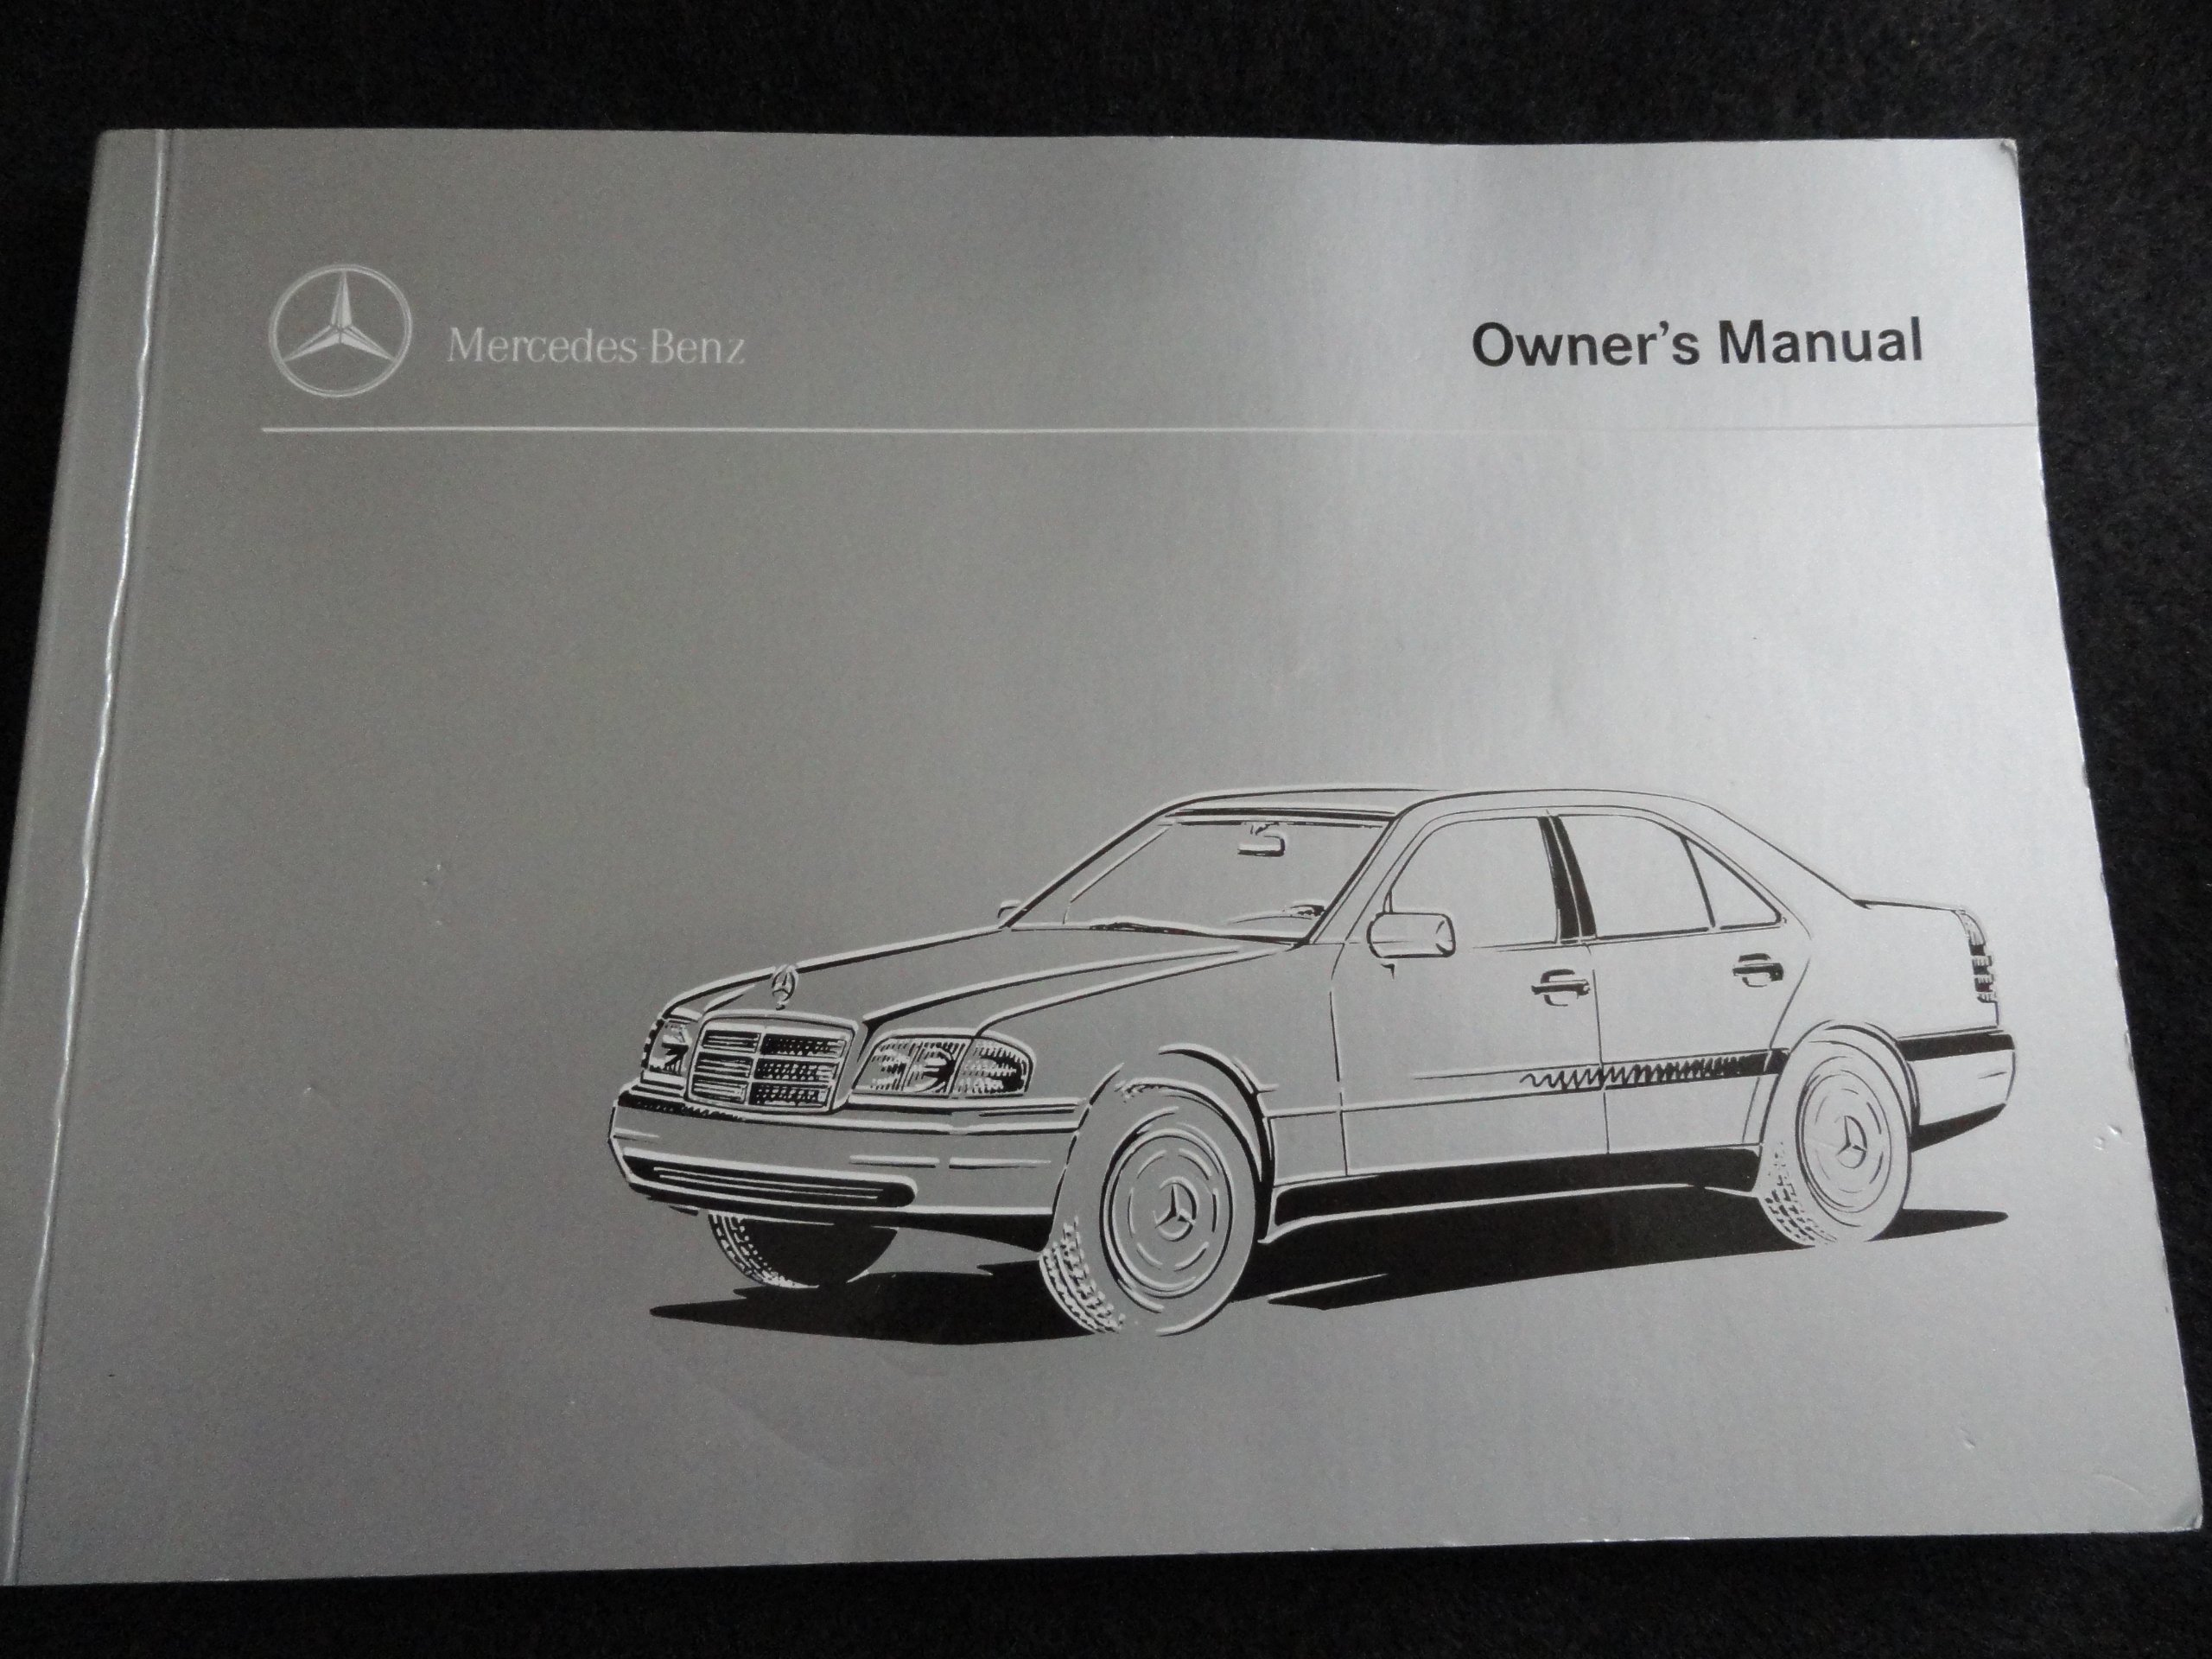 1996 mercedes benz c220 c280 c36 amg owners manual c 220 280 36 rh amazon  com 1996 Mercedes C-Class Interior 1996 Mercedes Advertising